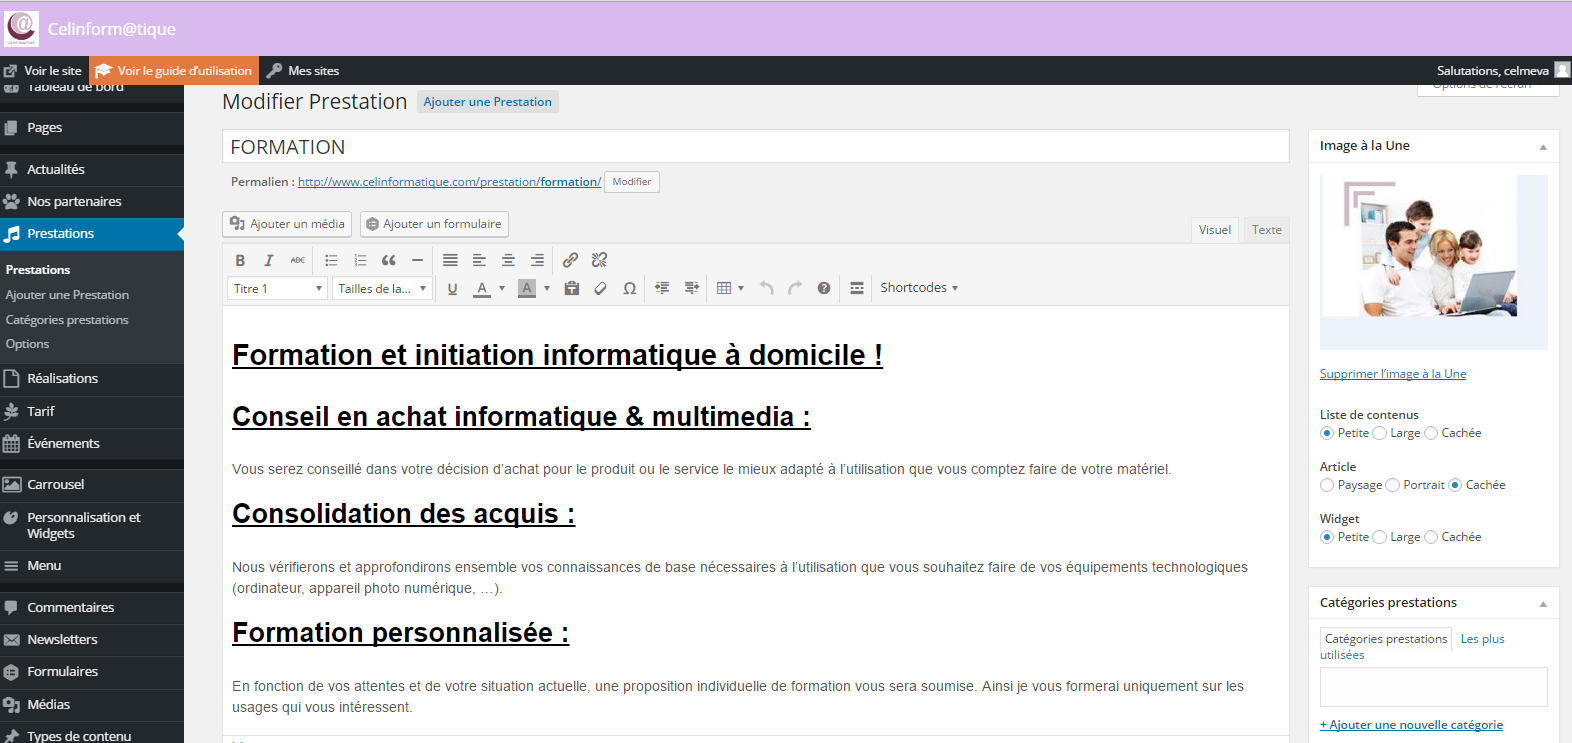 avantages creation site internet Description d'une page en utilisant le format HTLML